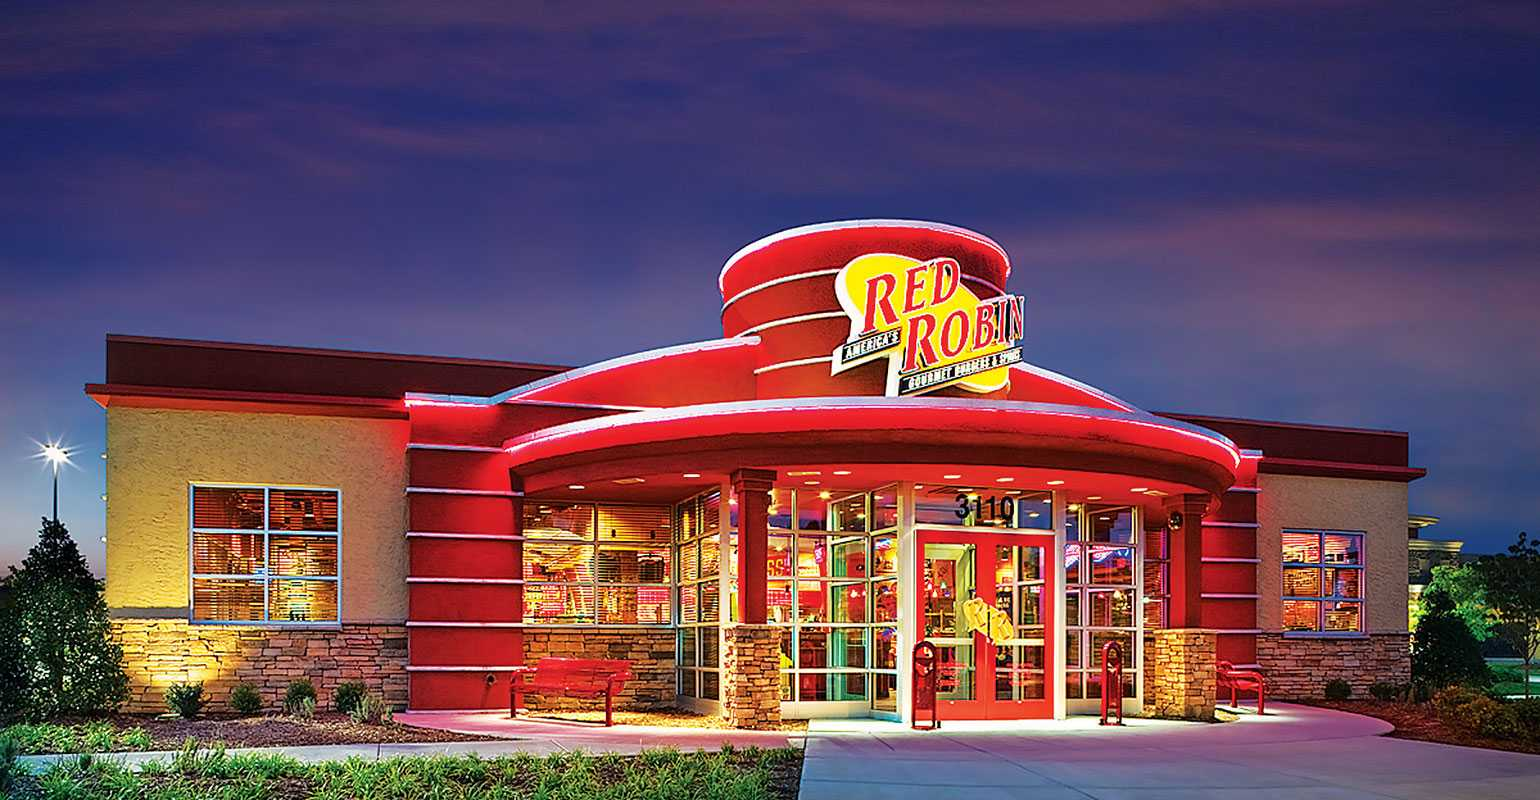 Red Robin Restaurant Locations Near Me